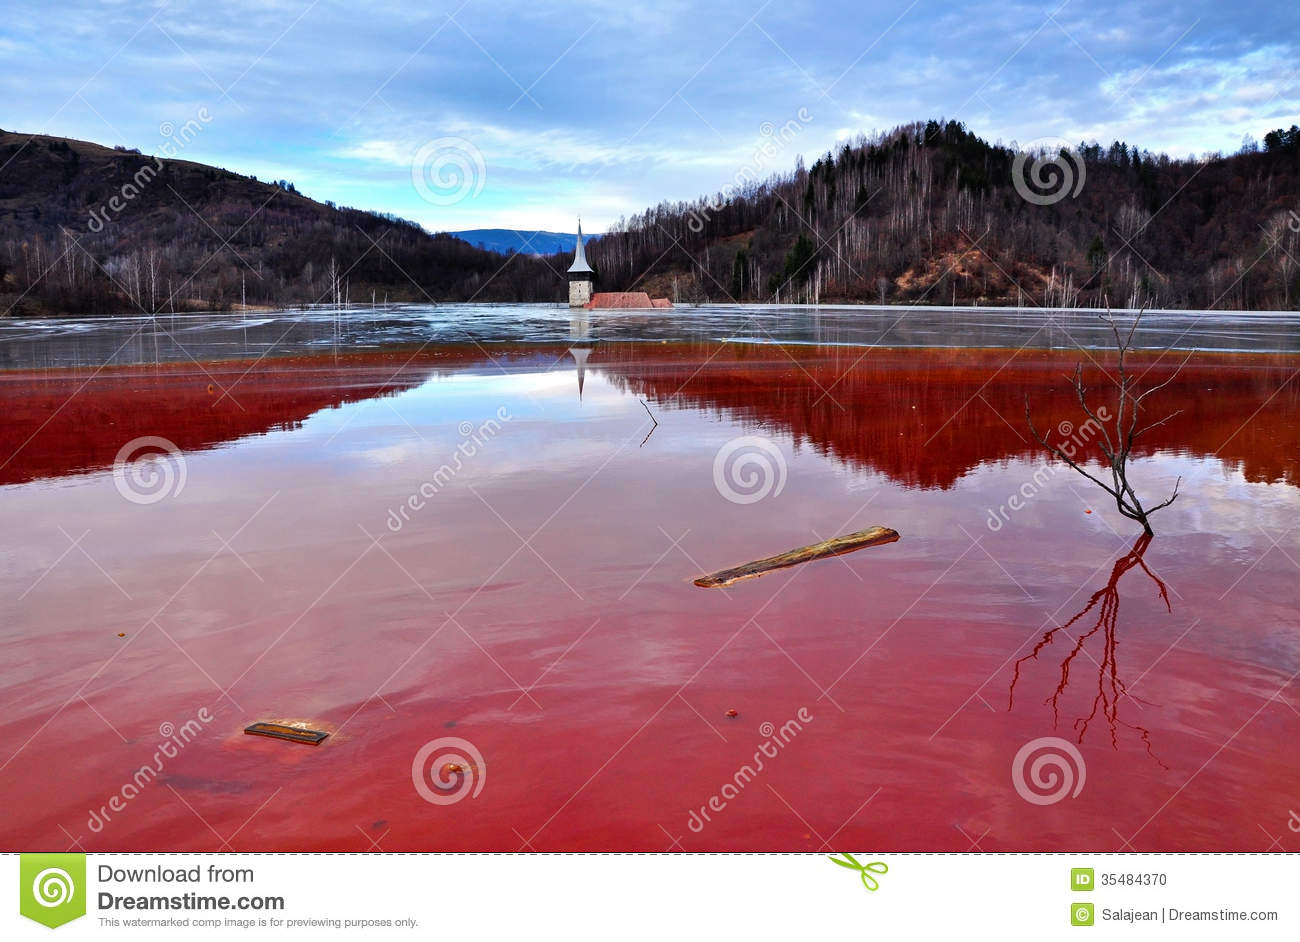 flooded church in a toxic red lake. Water polluting by a copper mine ...